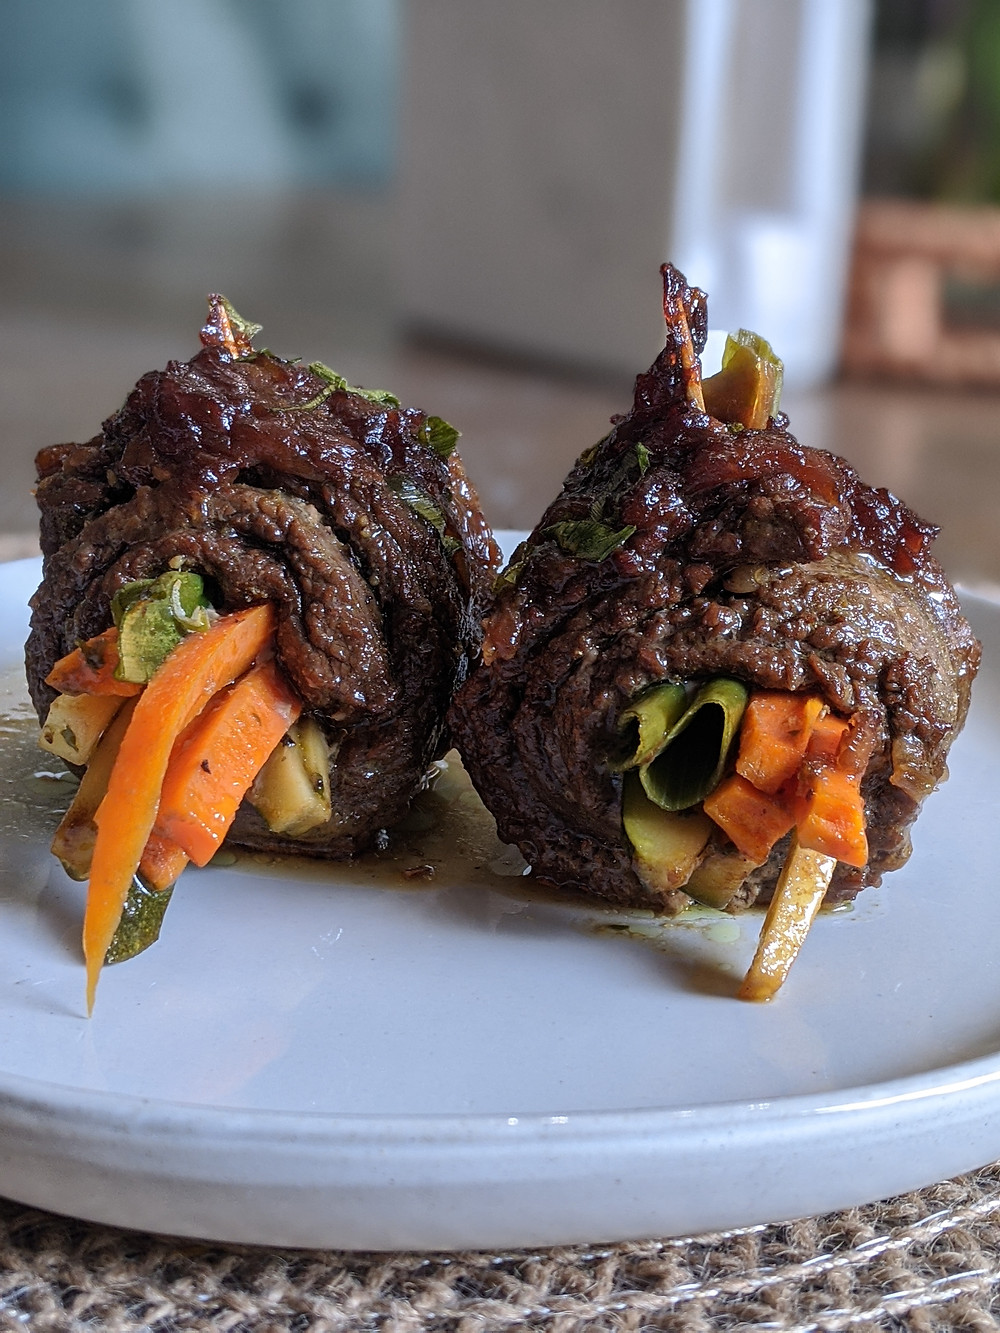 Balsamic grass-fed Steak and Veggie Roll-Ups - The Sunday Cookbook - Food allergy recipes - pampered chef - amanda macgregor centineo - food allergy recipes